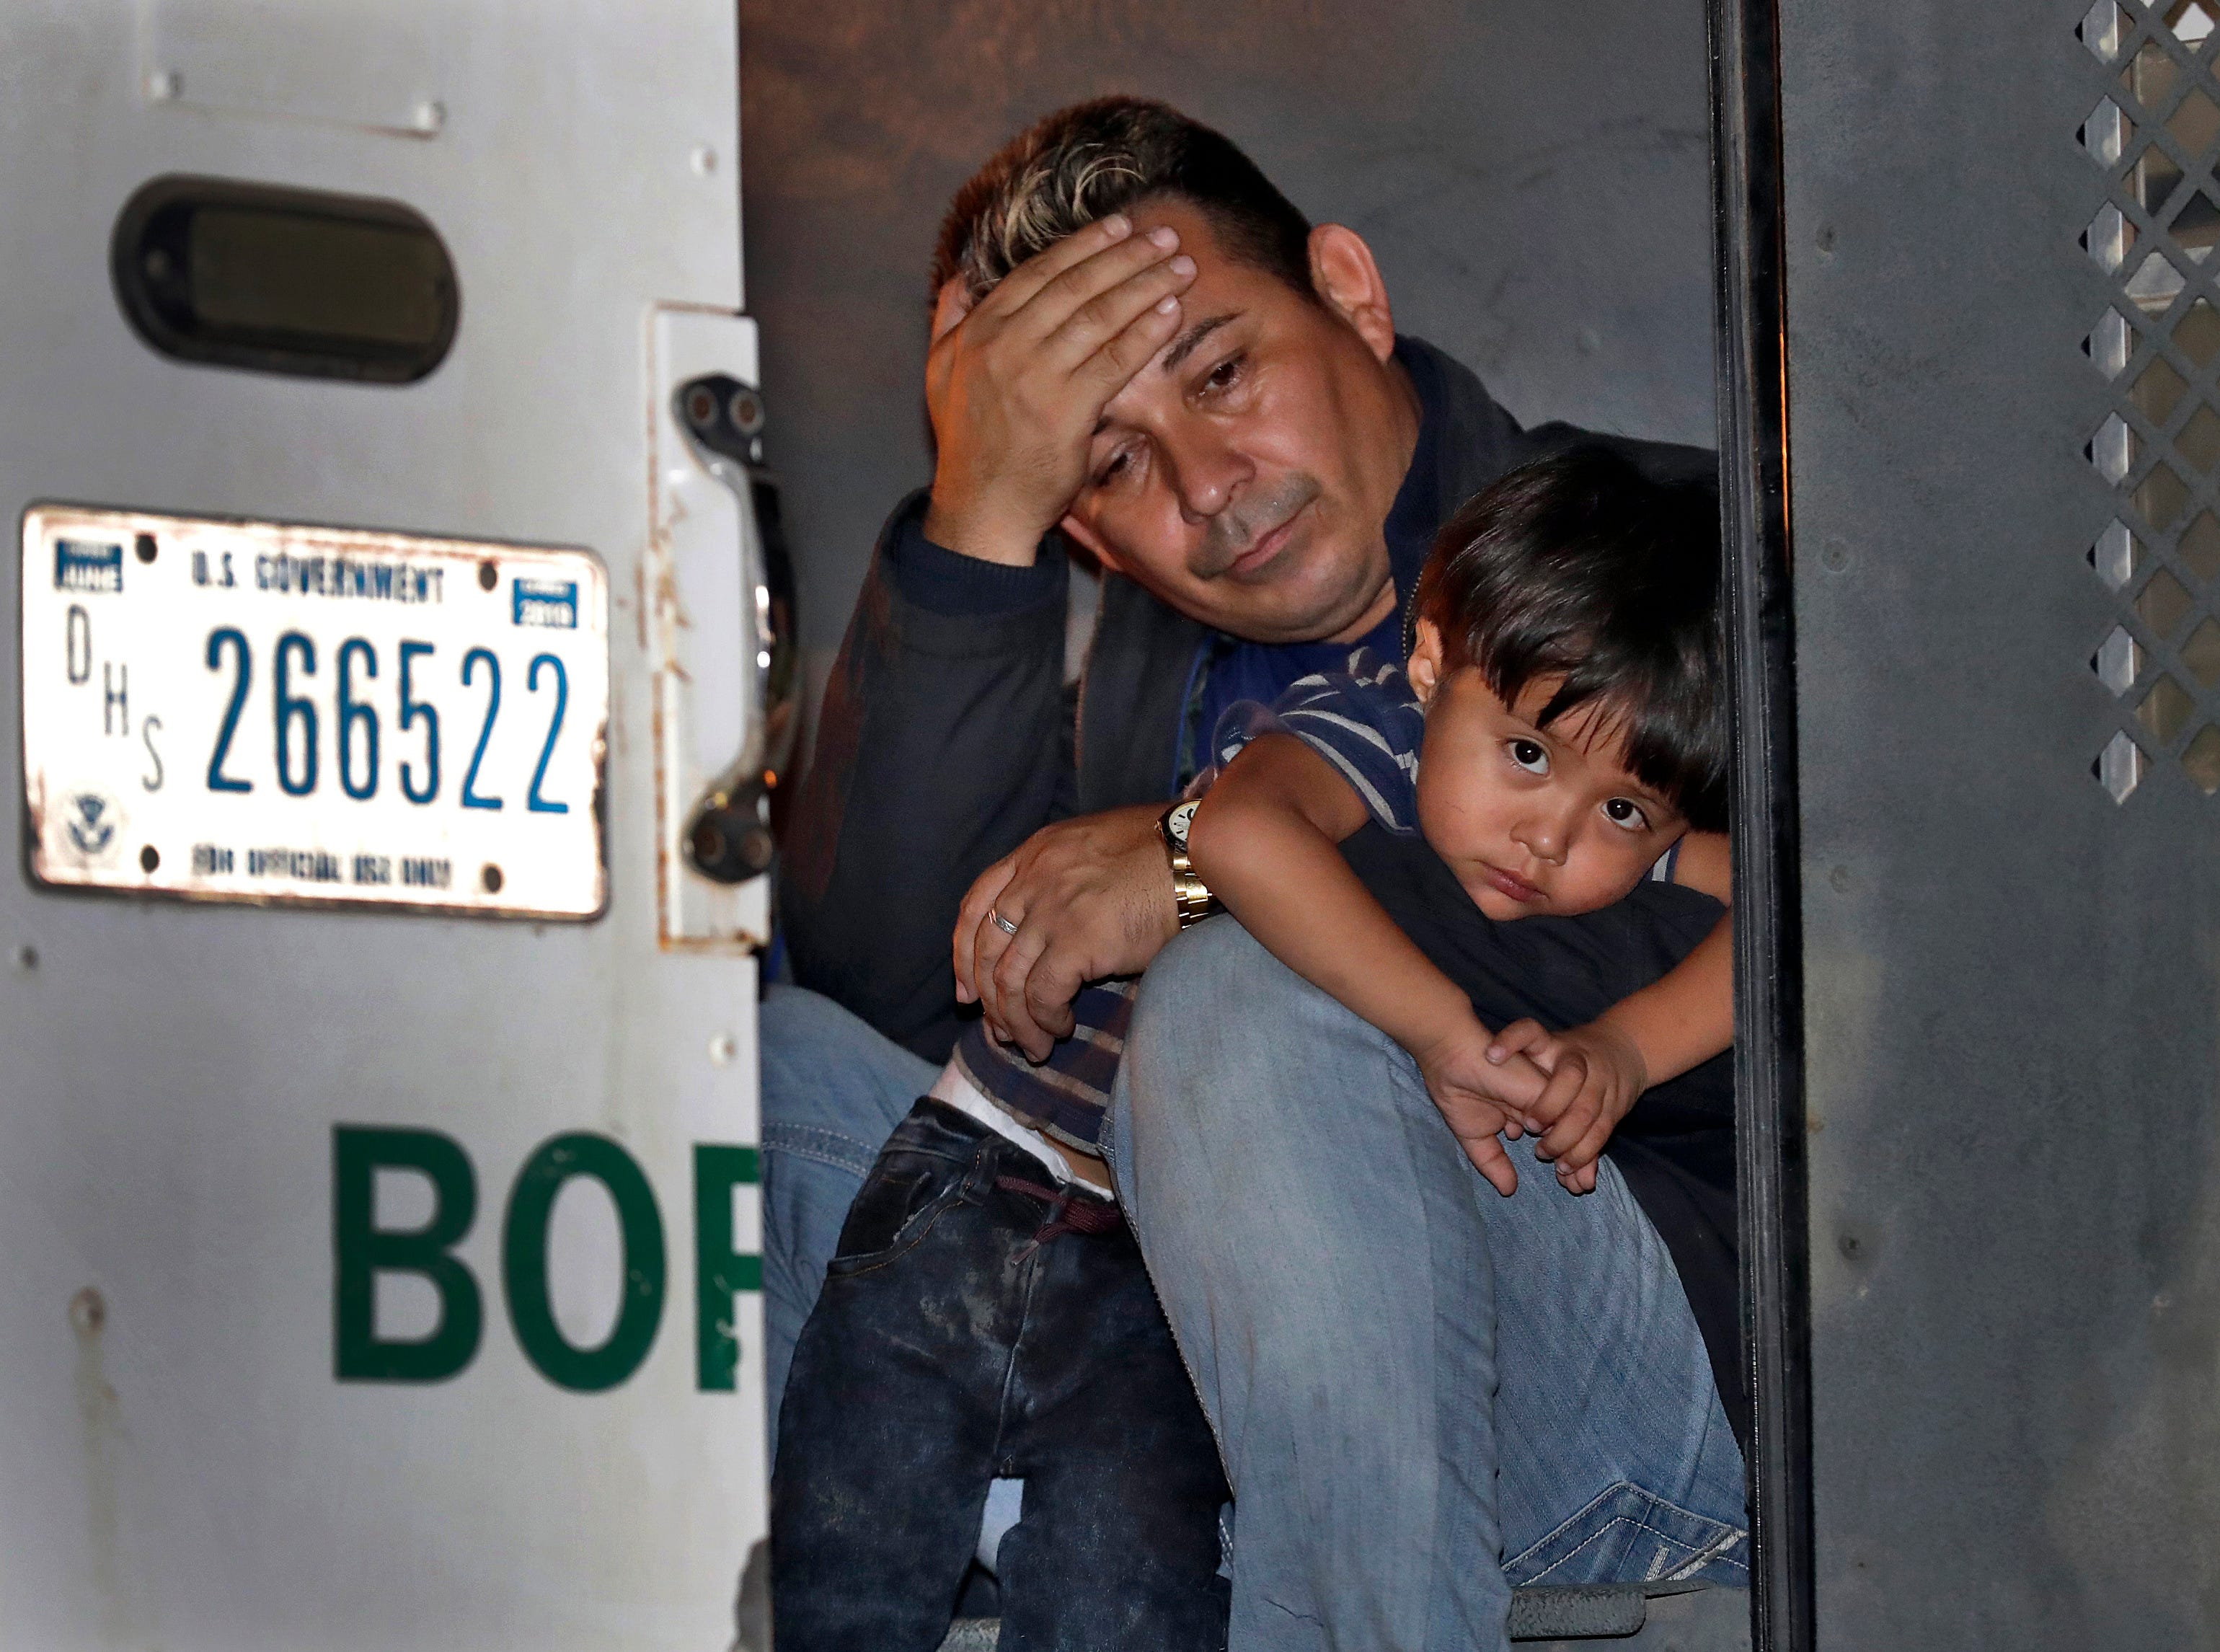 A father and his 3-year-old son are detained in the back of a U.S. Customs and Border Patrol vehicle on July 18, 2018, in San Luis, Ariz. The boy, his father and two siblings were arrested by a U.S. Border Patrol agent who spotted them crossing a canal along the the international border.